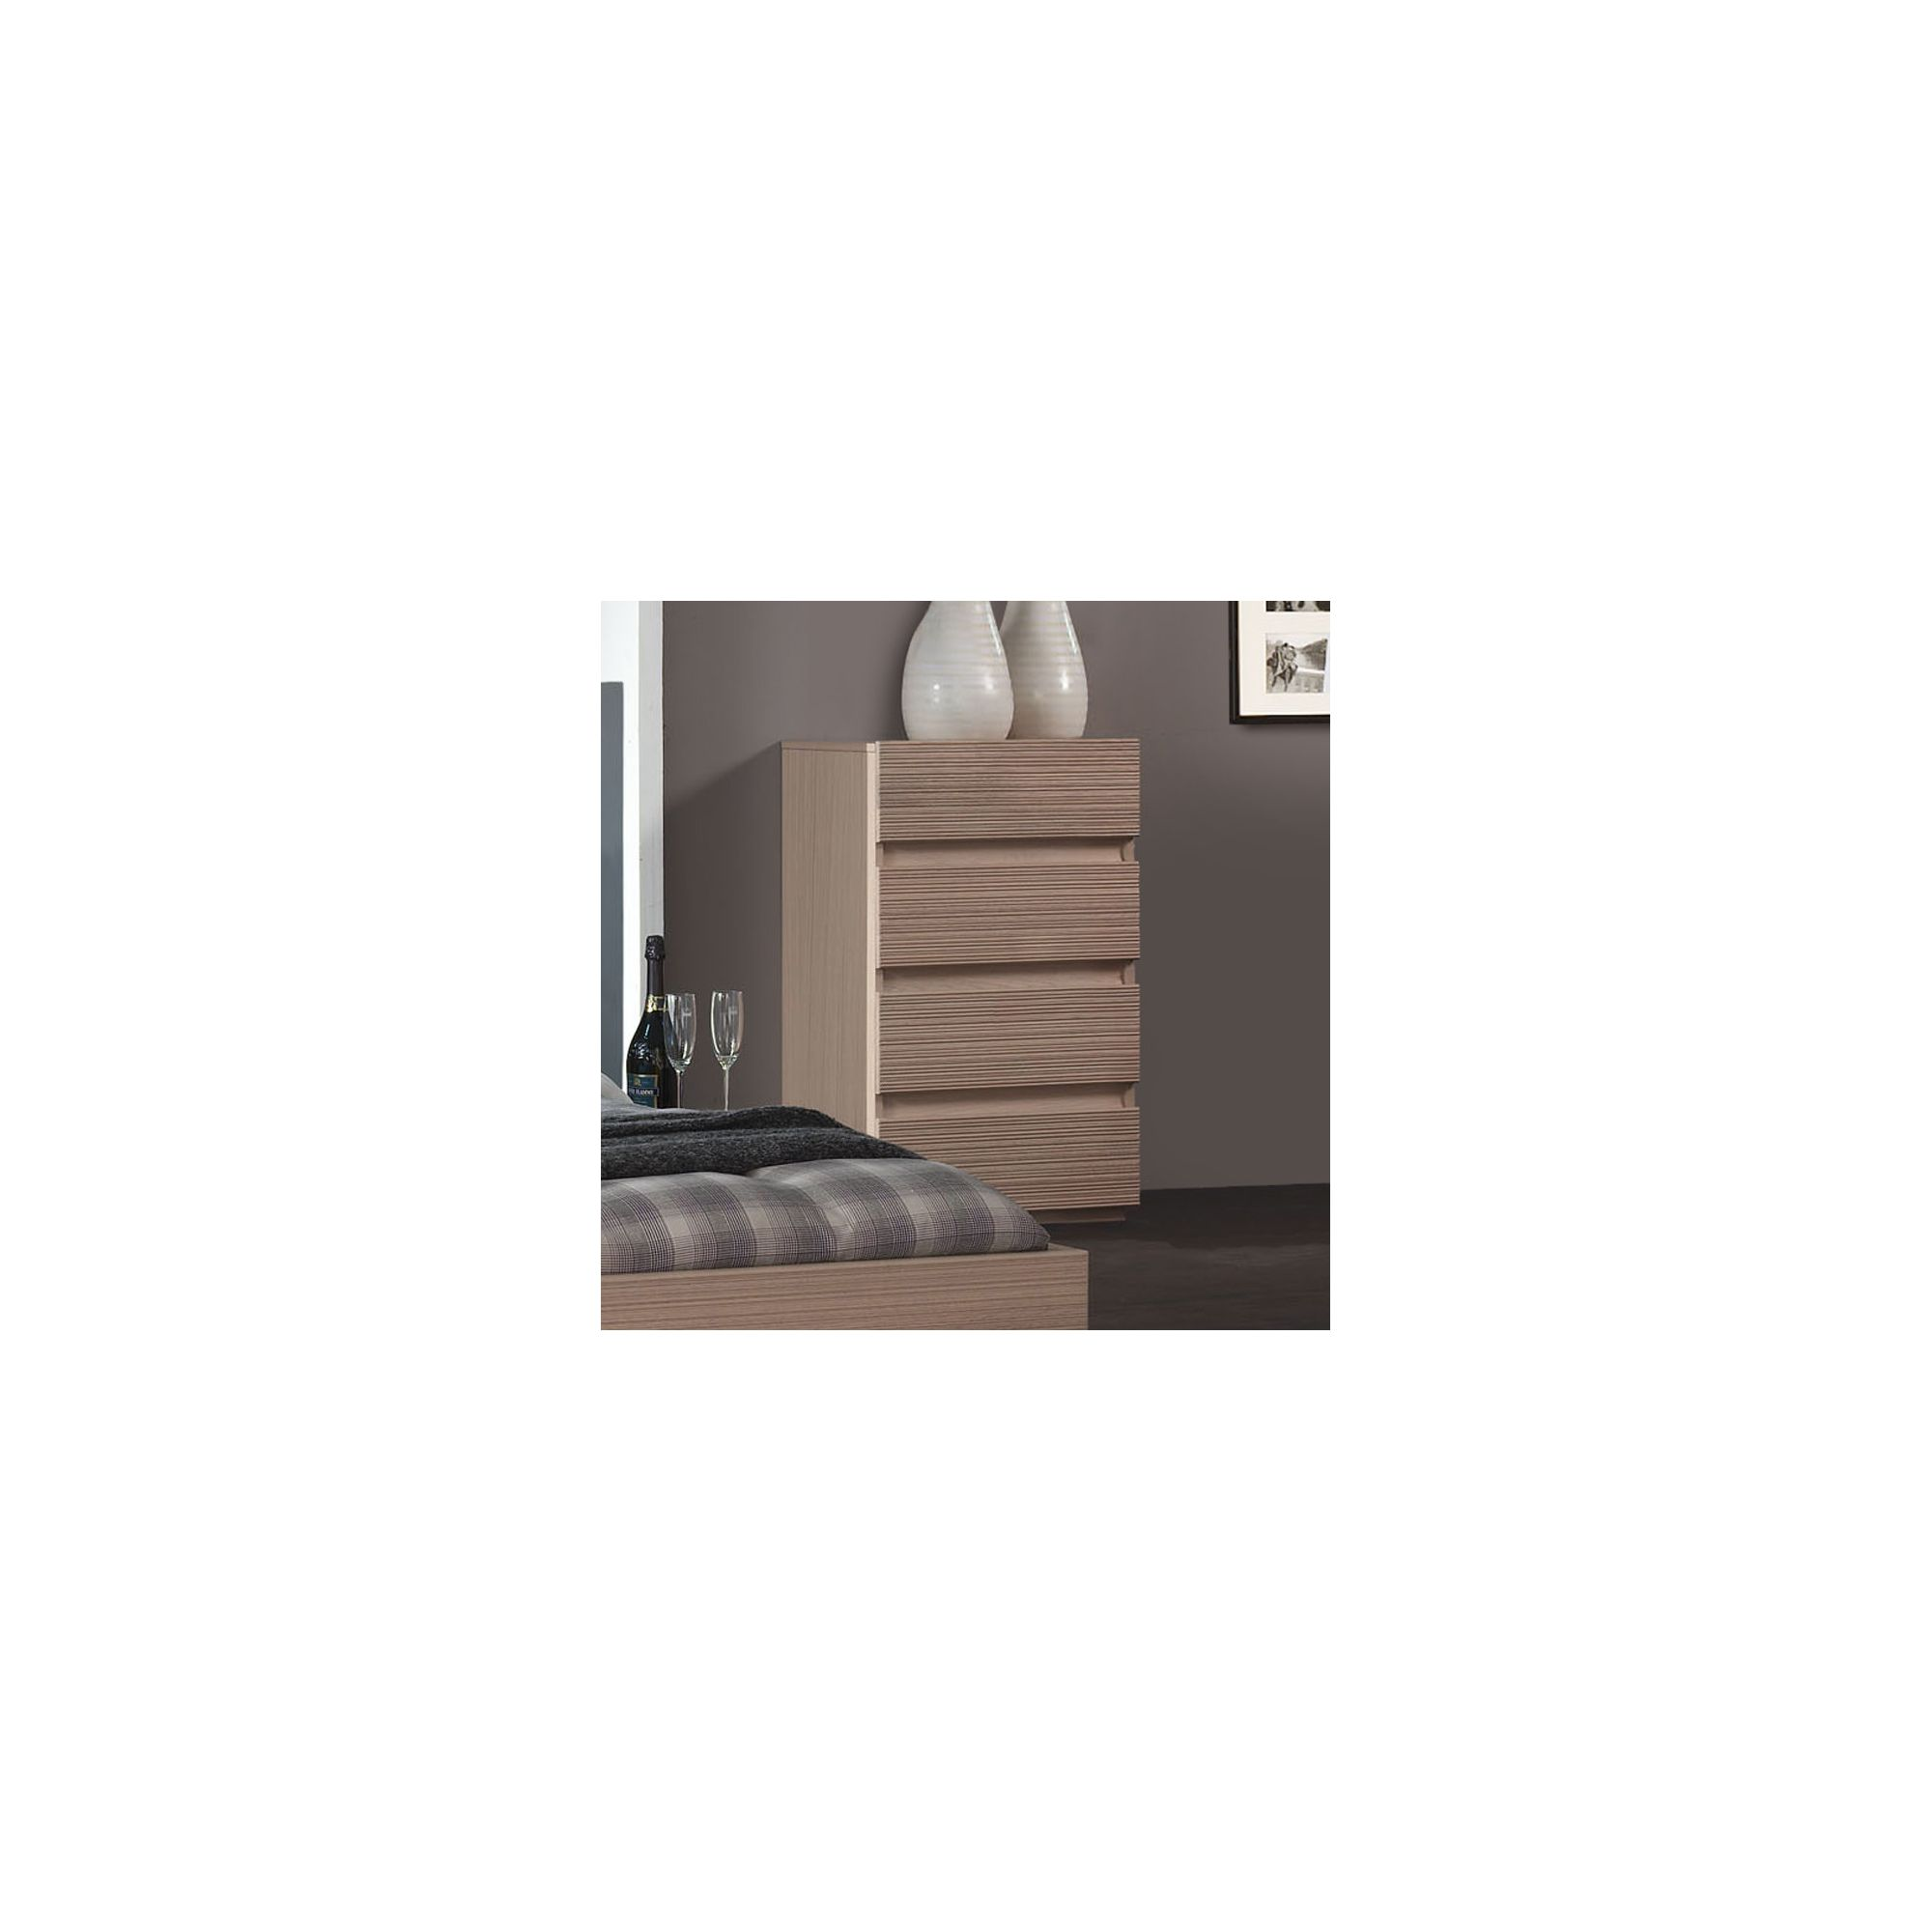 Sleepline Diva 4 Drawer Narrow Chest - White Mat Lacquered at Tesco Direct